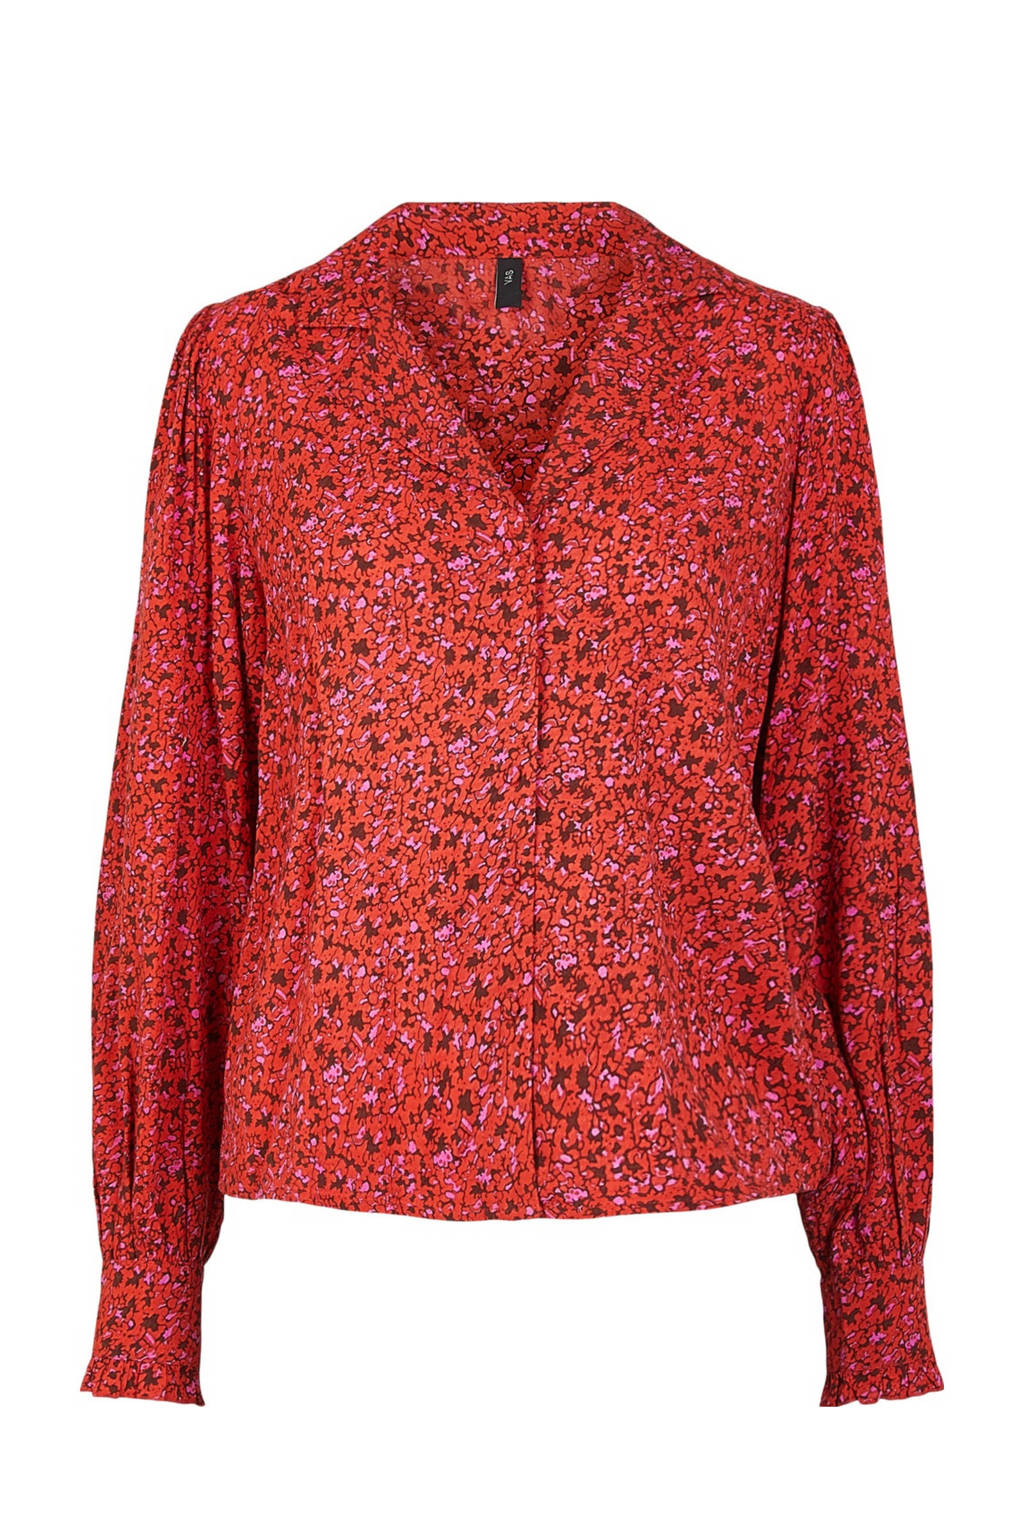 Y.A.S blouse met all over print rood, Rood